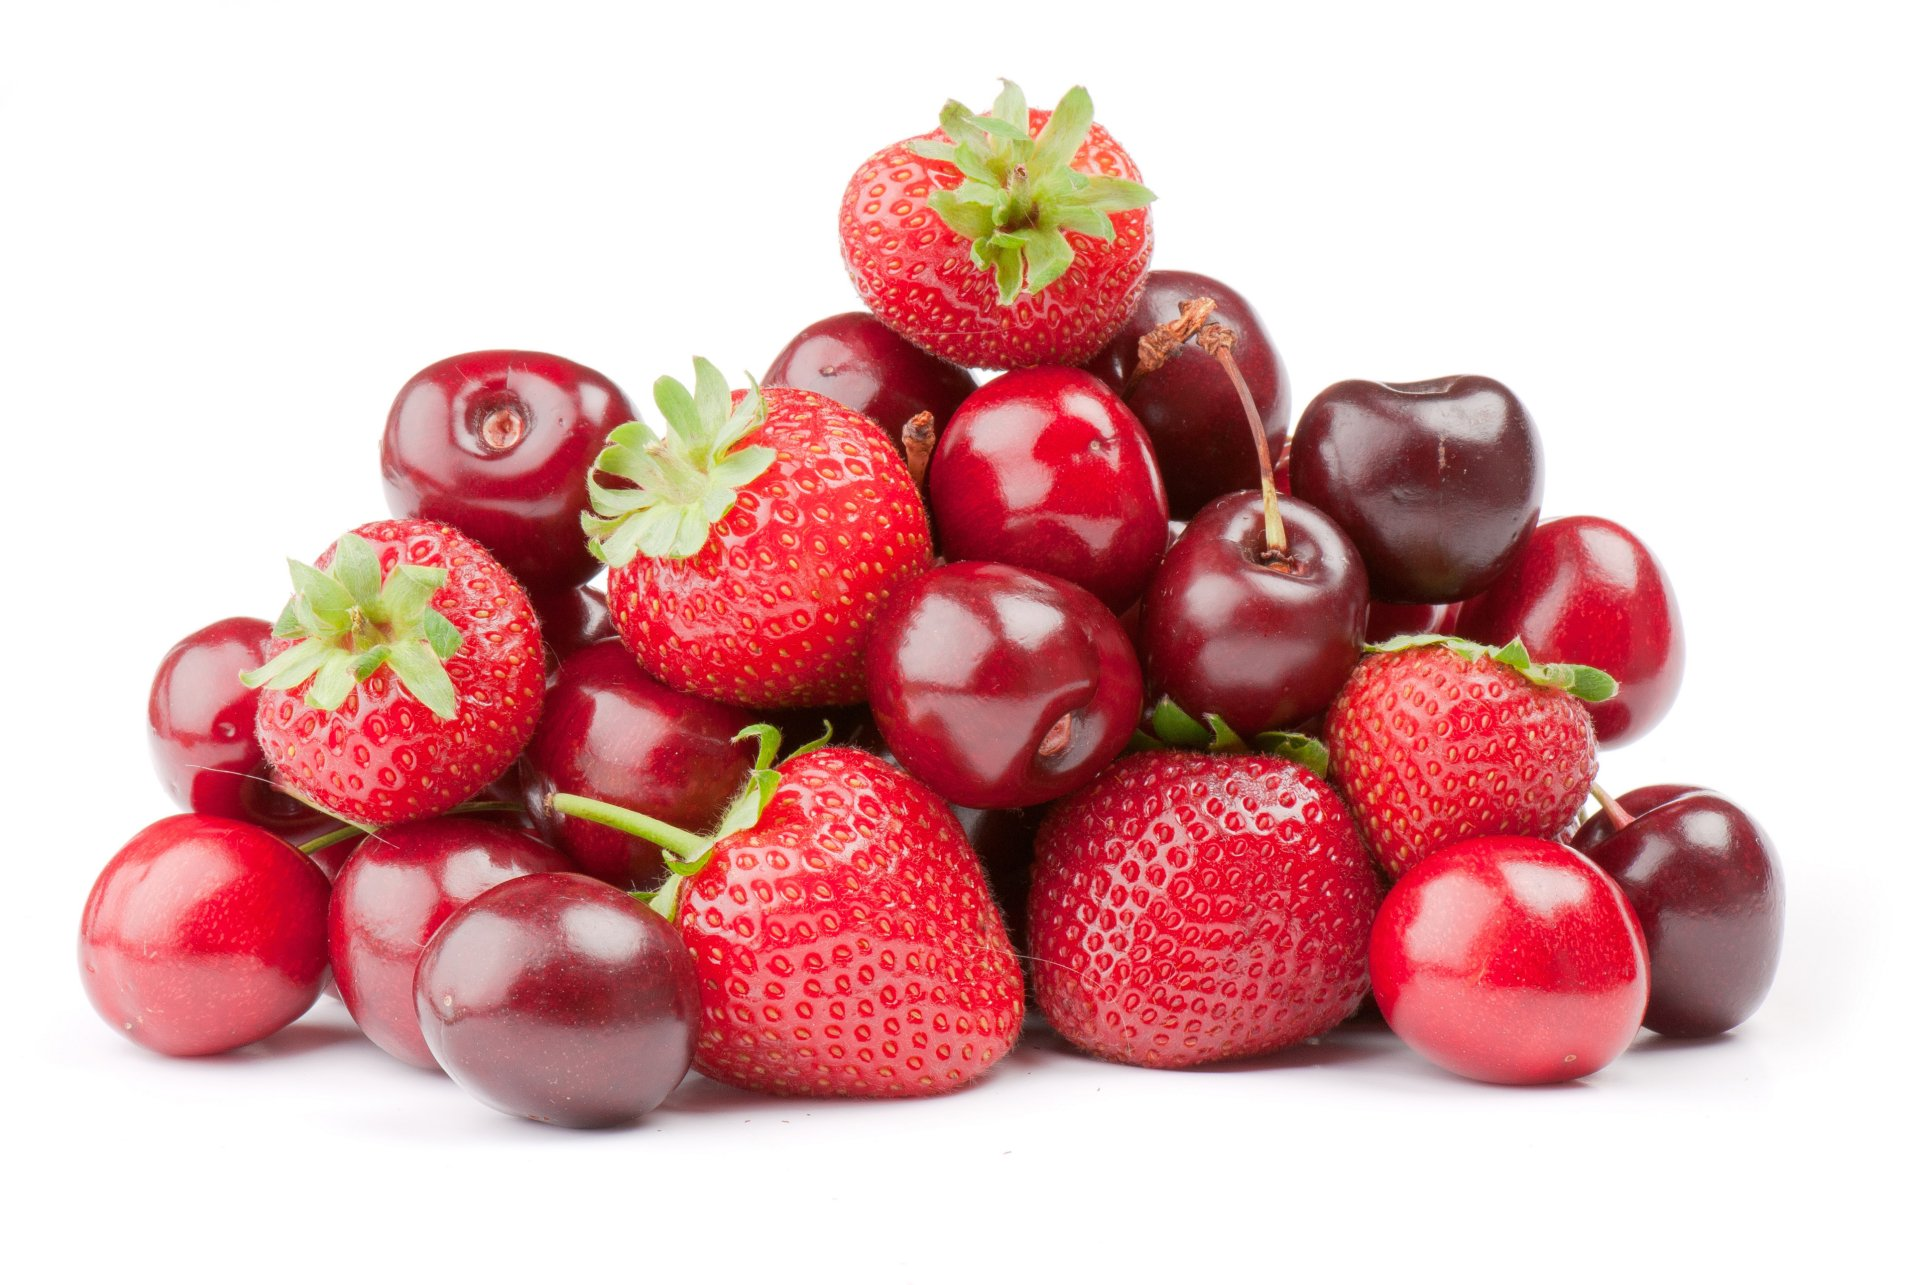 Food - Berry  Strawberry Cherry Wallpaper